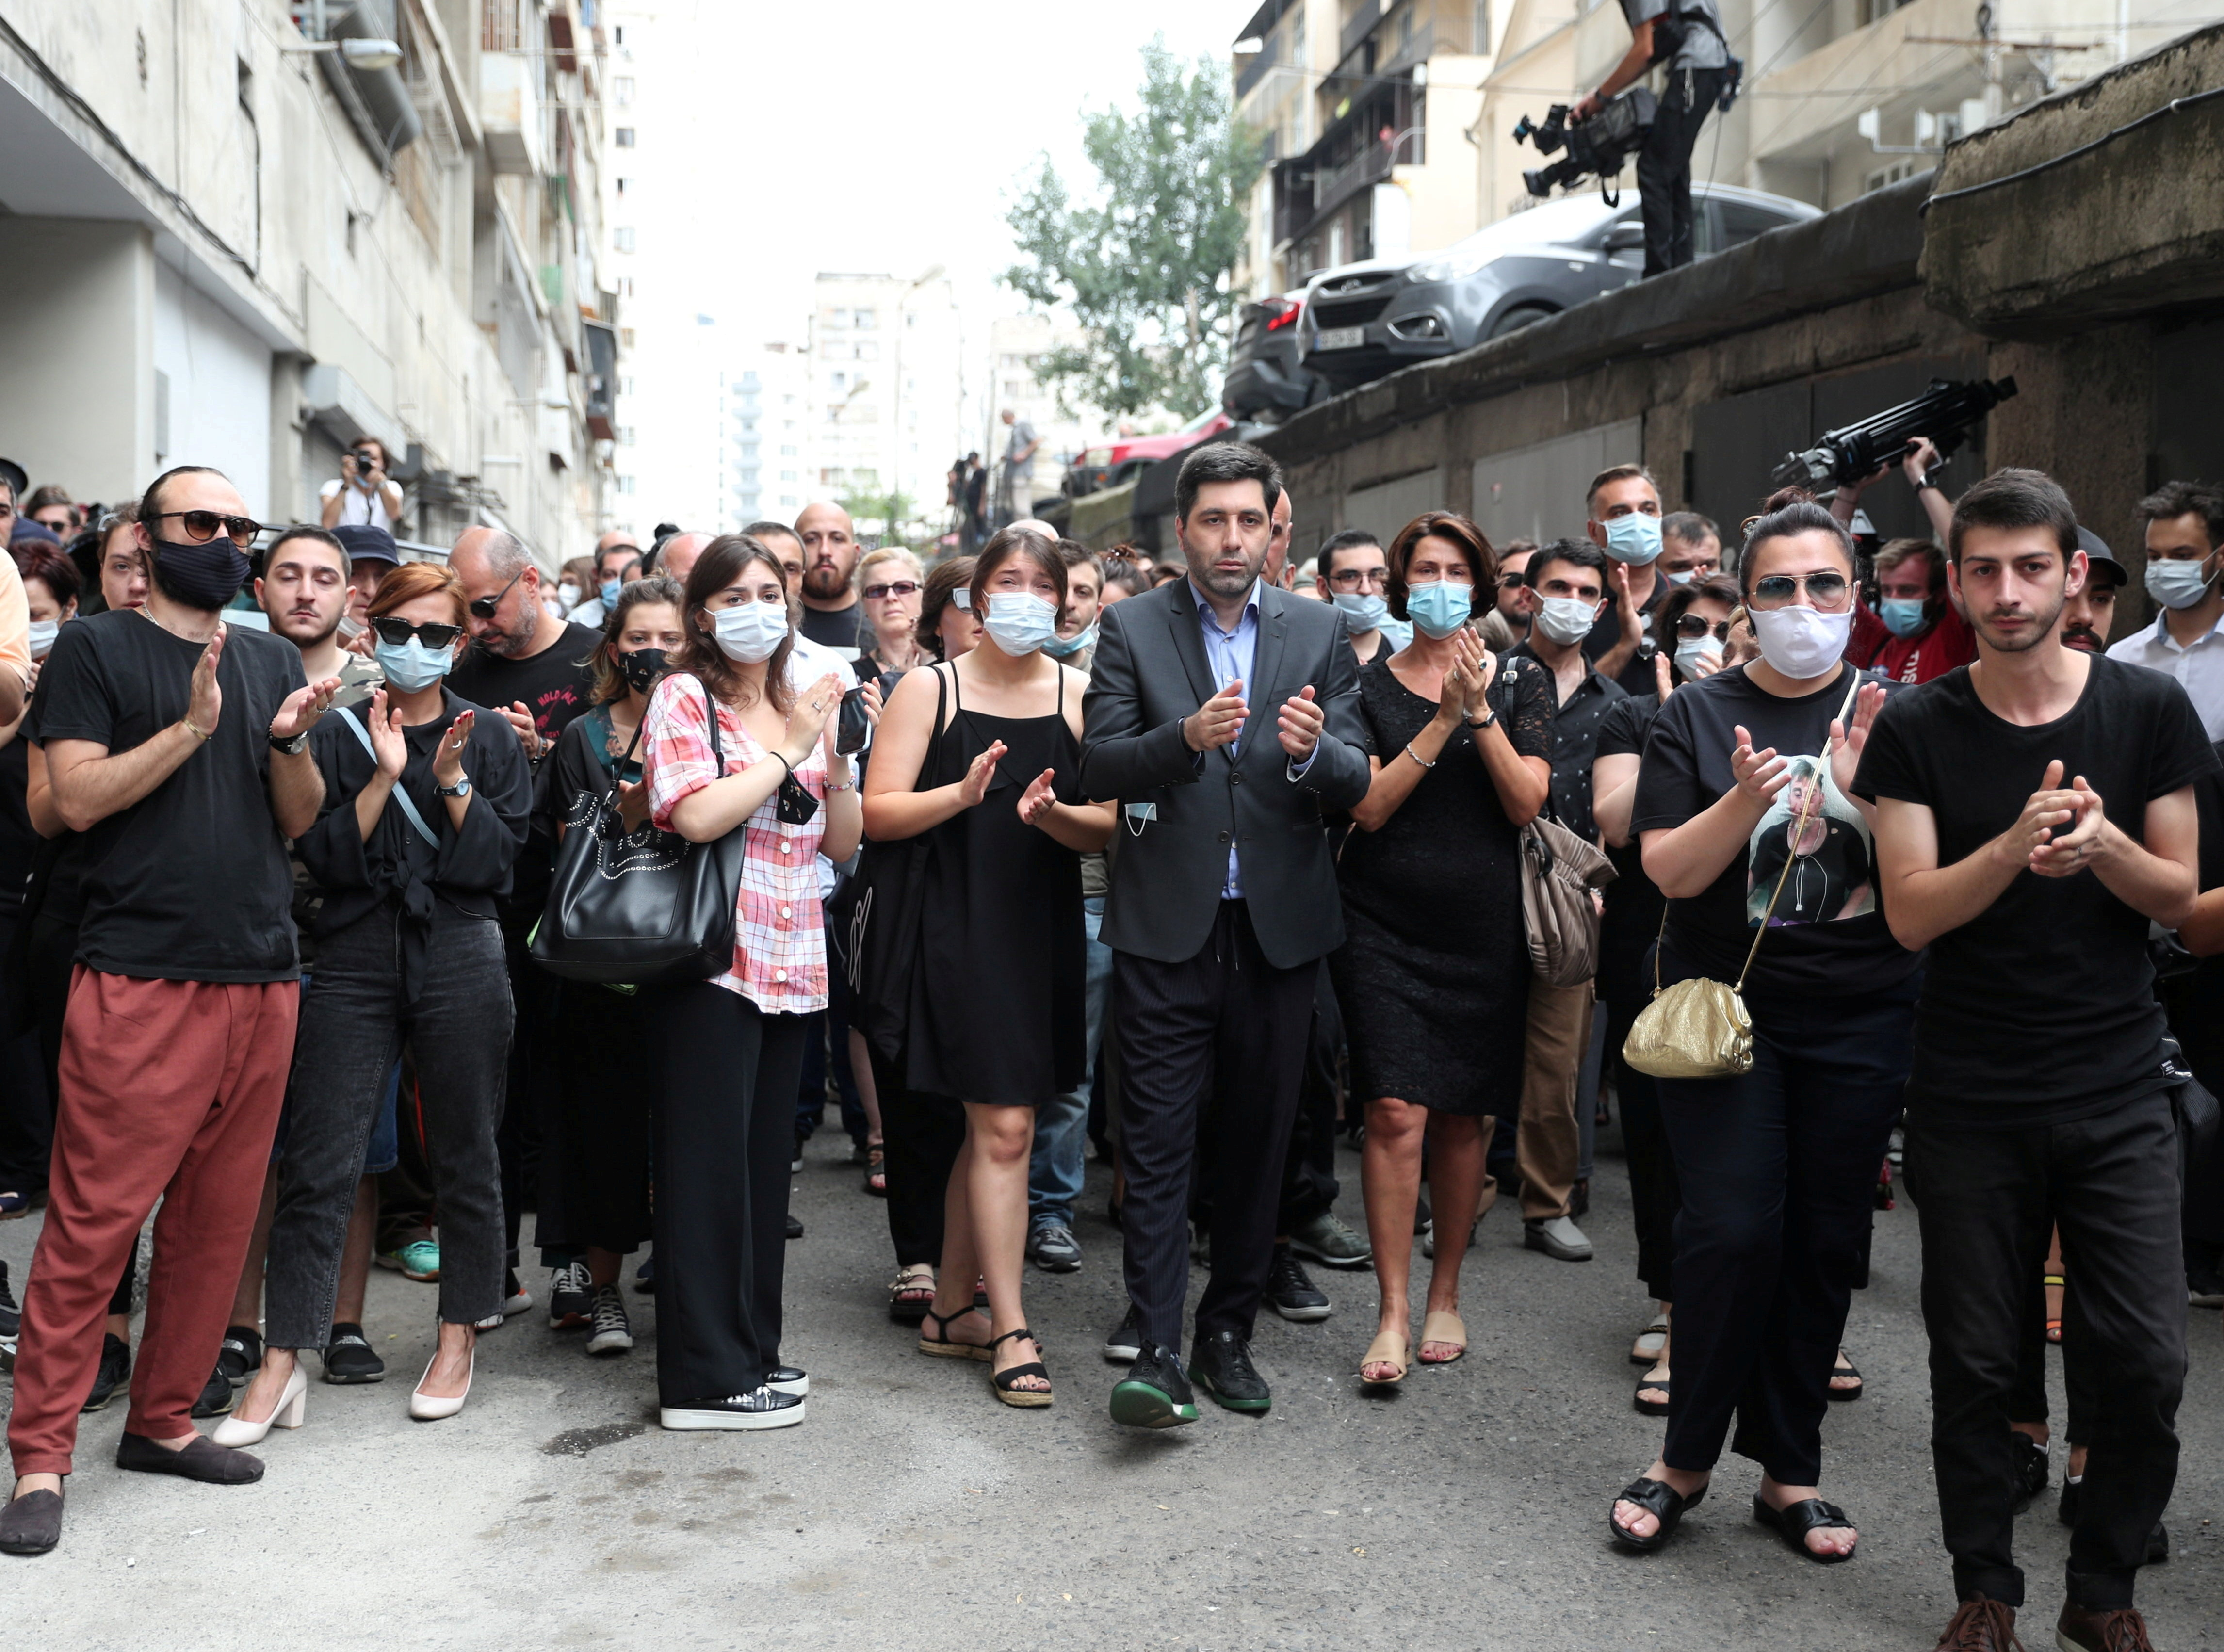 Mourners applaud during a funeral of journalist Alexander Lashkarava in Tbilisi, Georgia July 13, 2021. Lashkarava was found dead at his home several days after he was beaten during attacks on LGBT+ activists in Tbilisi. REUTERS/Irakli Gedenidze/File Photo